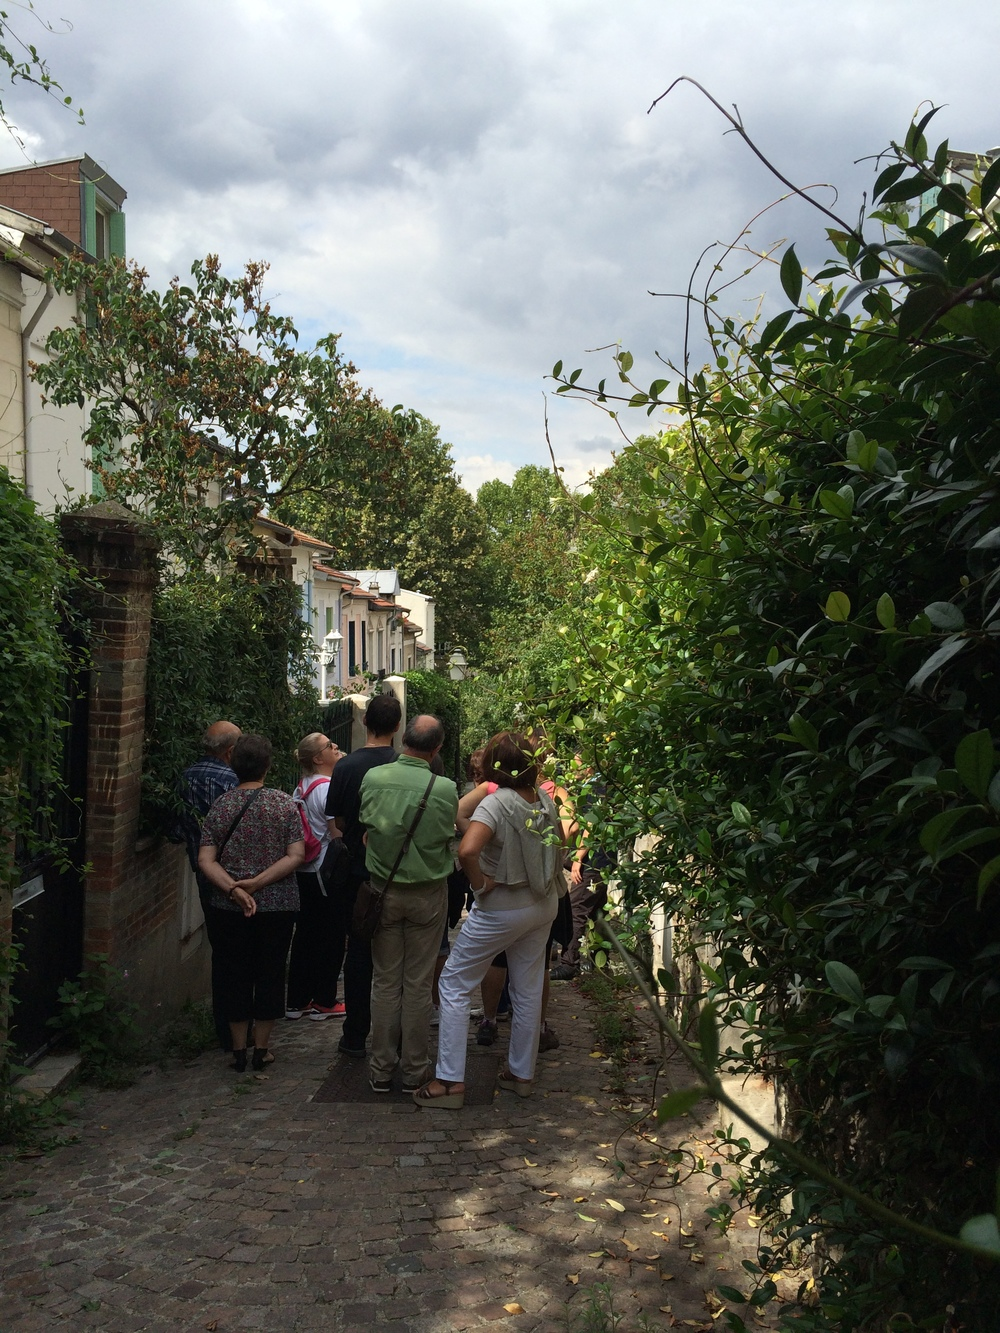 Tour Group on Villa des Lilas